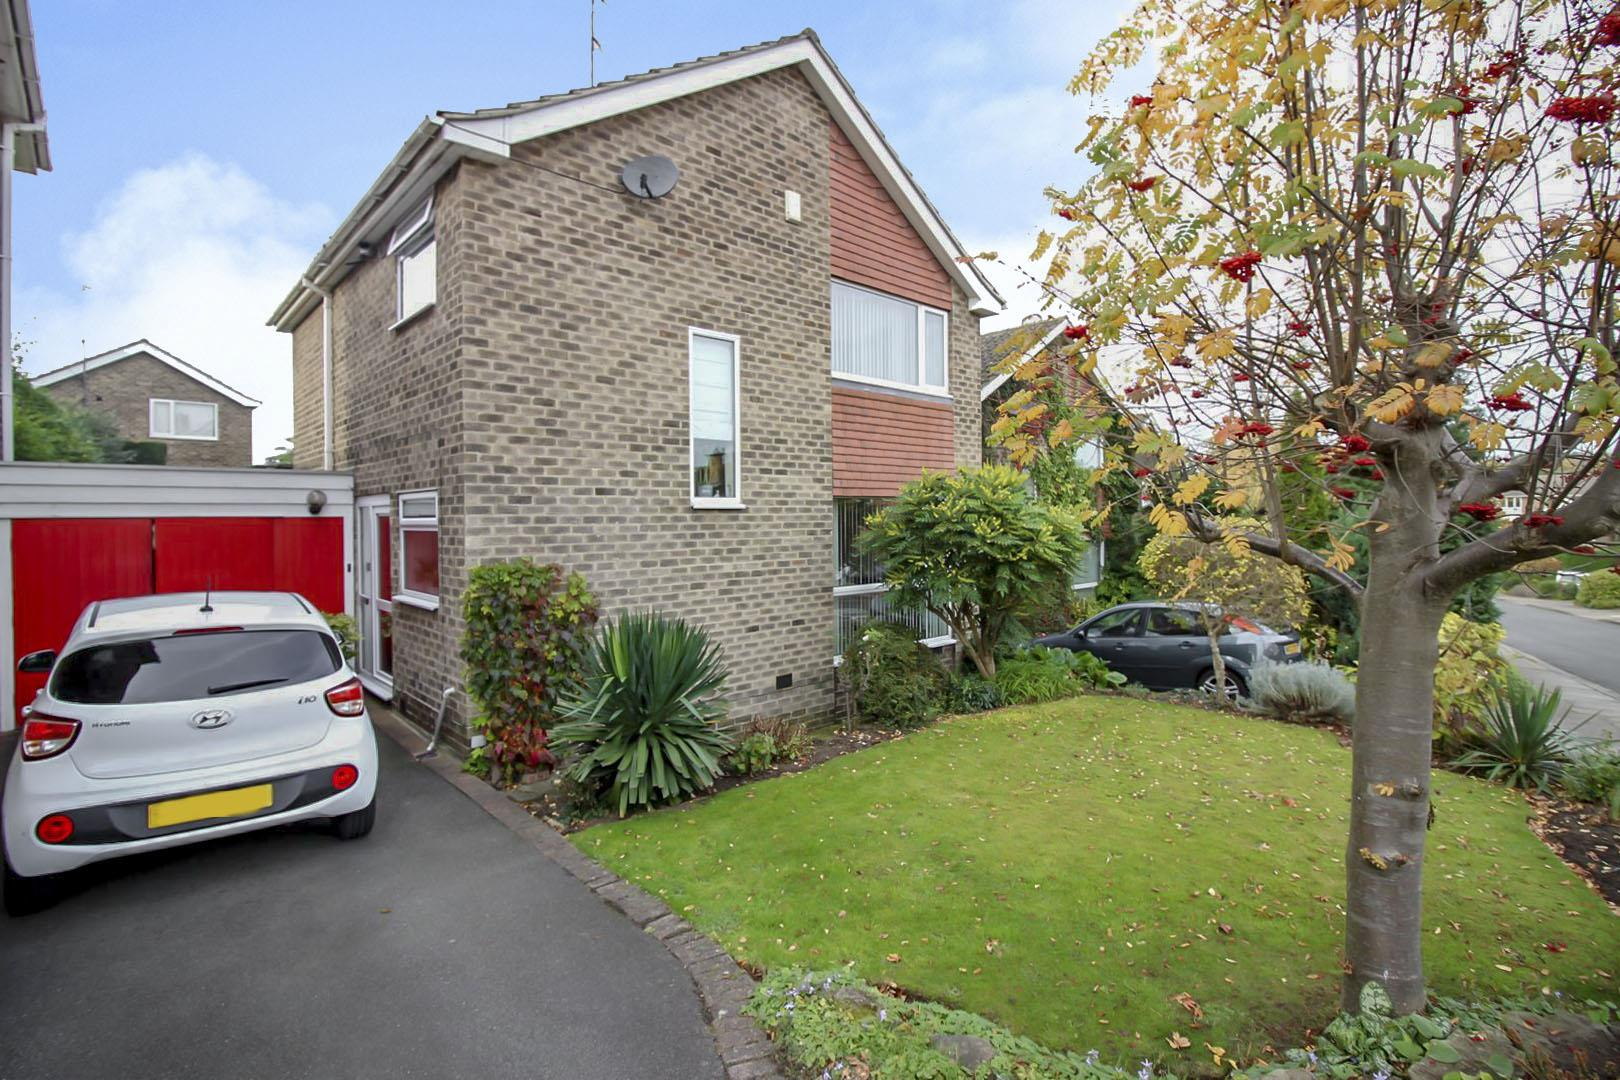 3 Bedrooms Detached House for sale in Ullswater Crescent, Bramcote